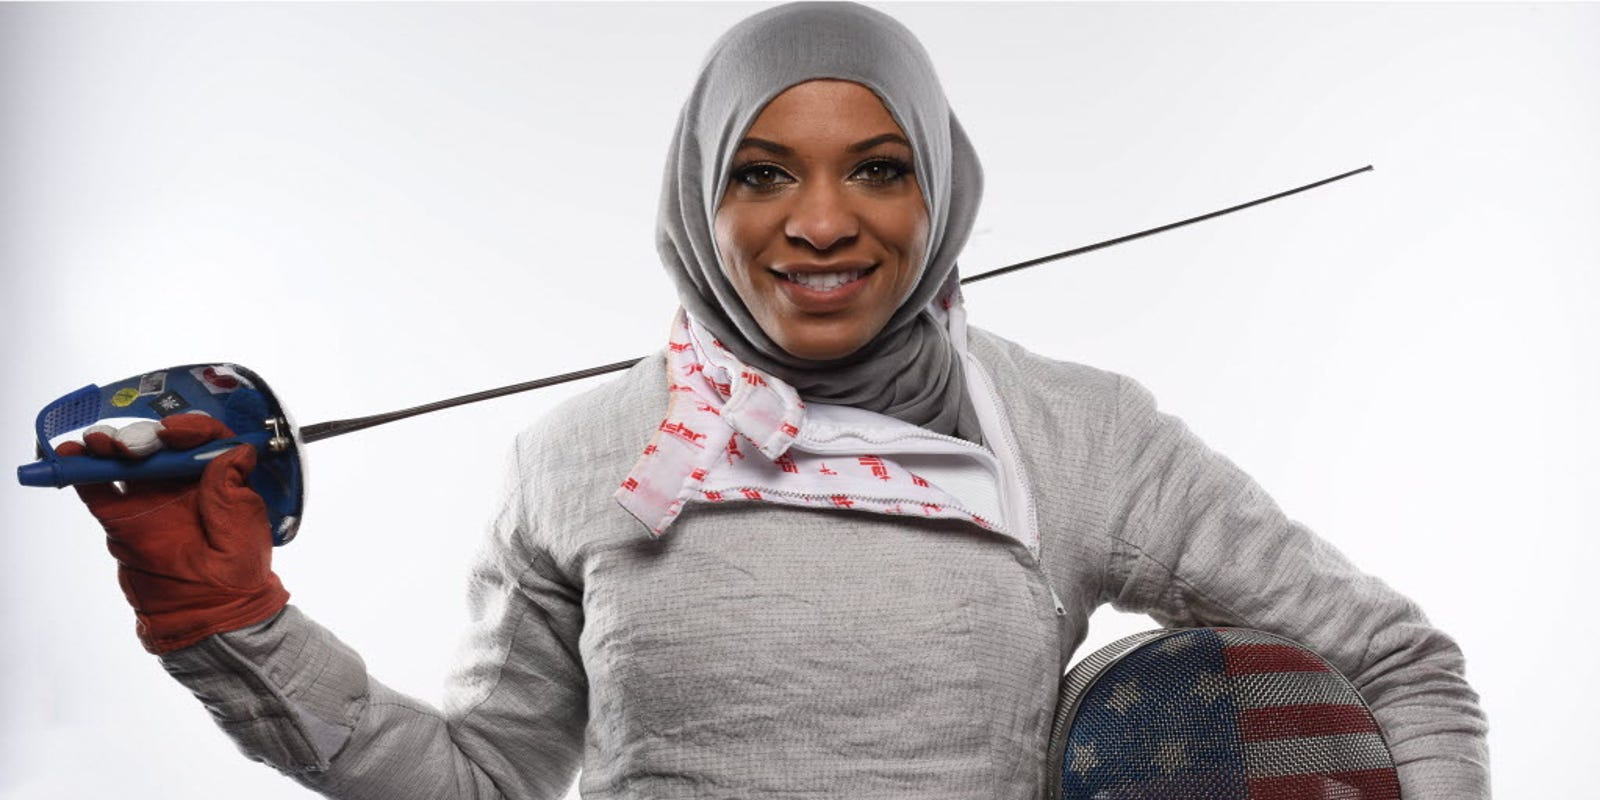 SXSW volunteer asks Muslim fencer to remove hijab for a